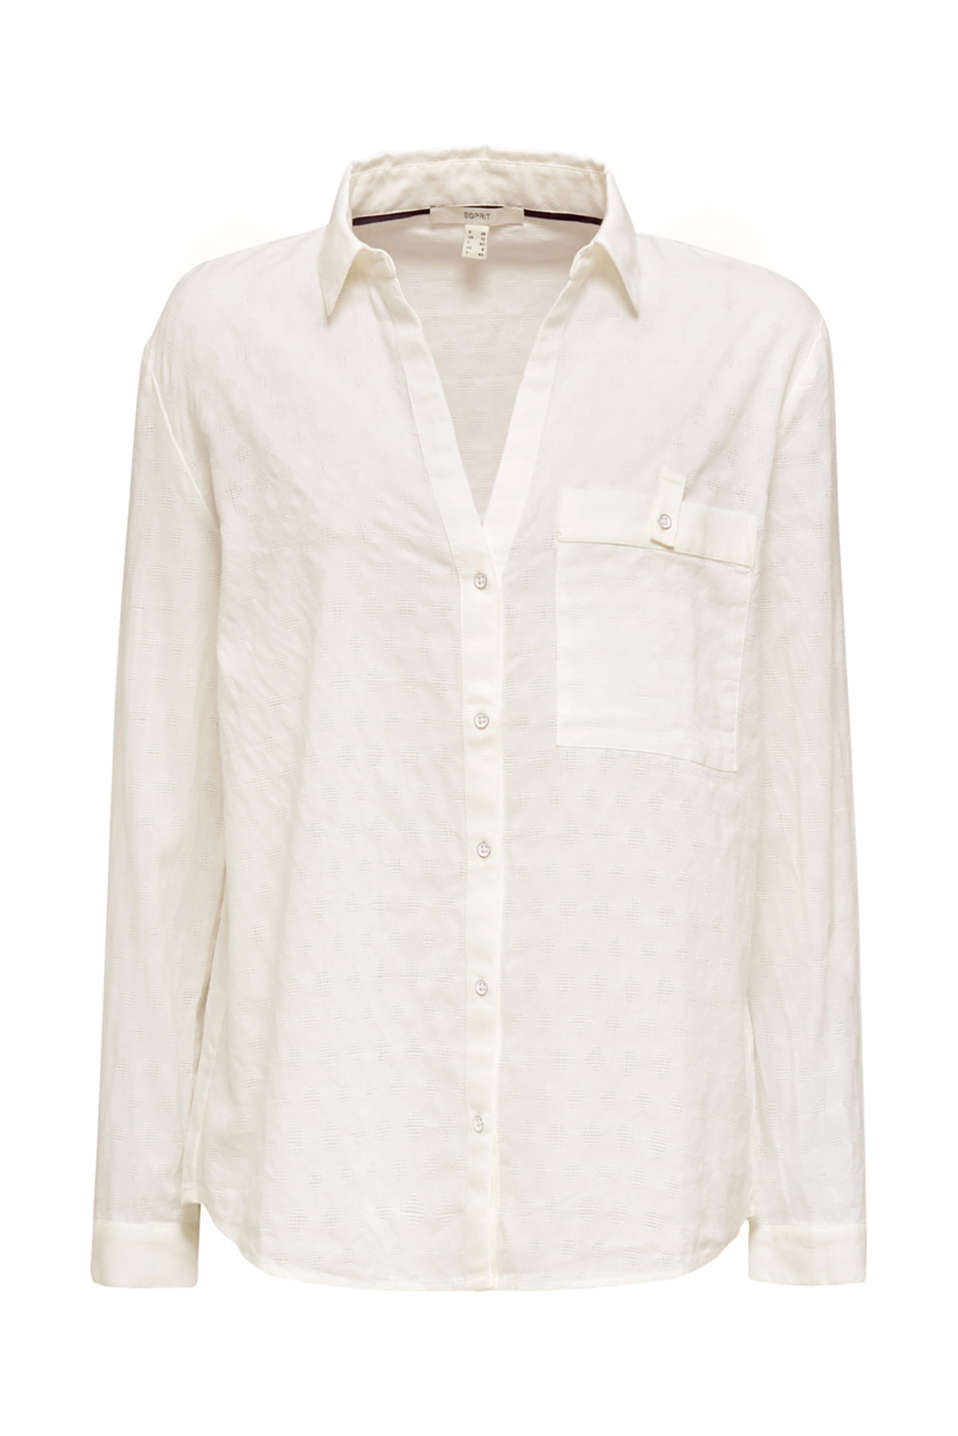 Blouse with a jacquard pattern, 100% cotton, OFF WHITE, detail image number 8